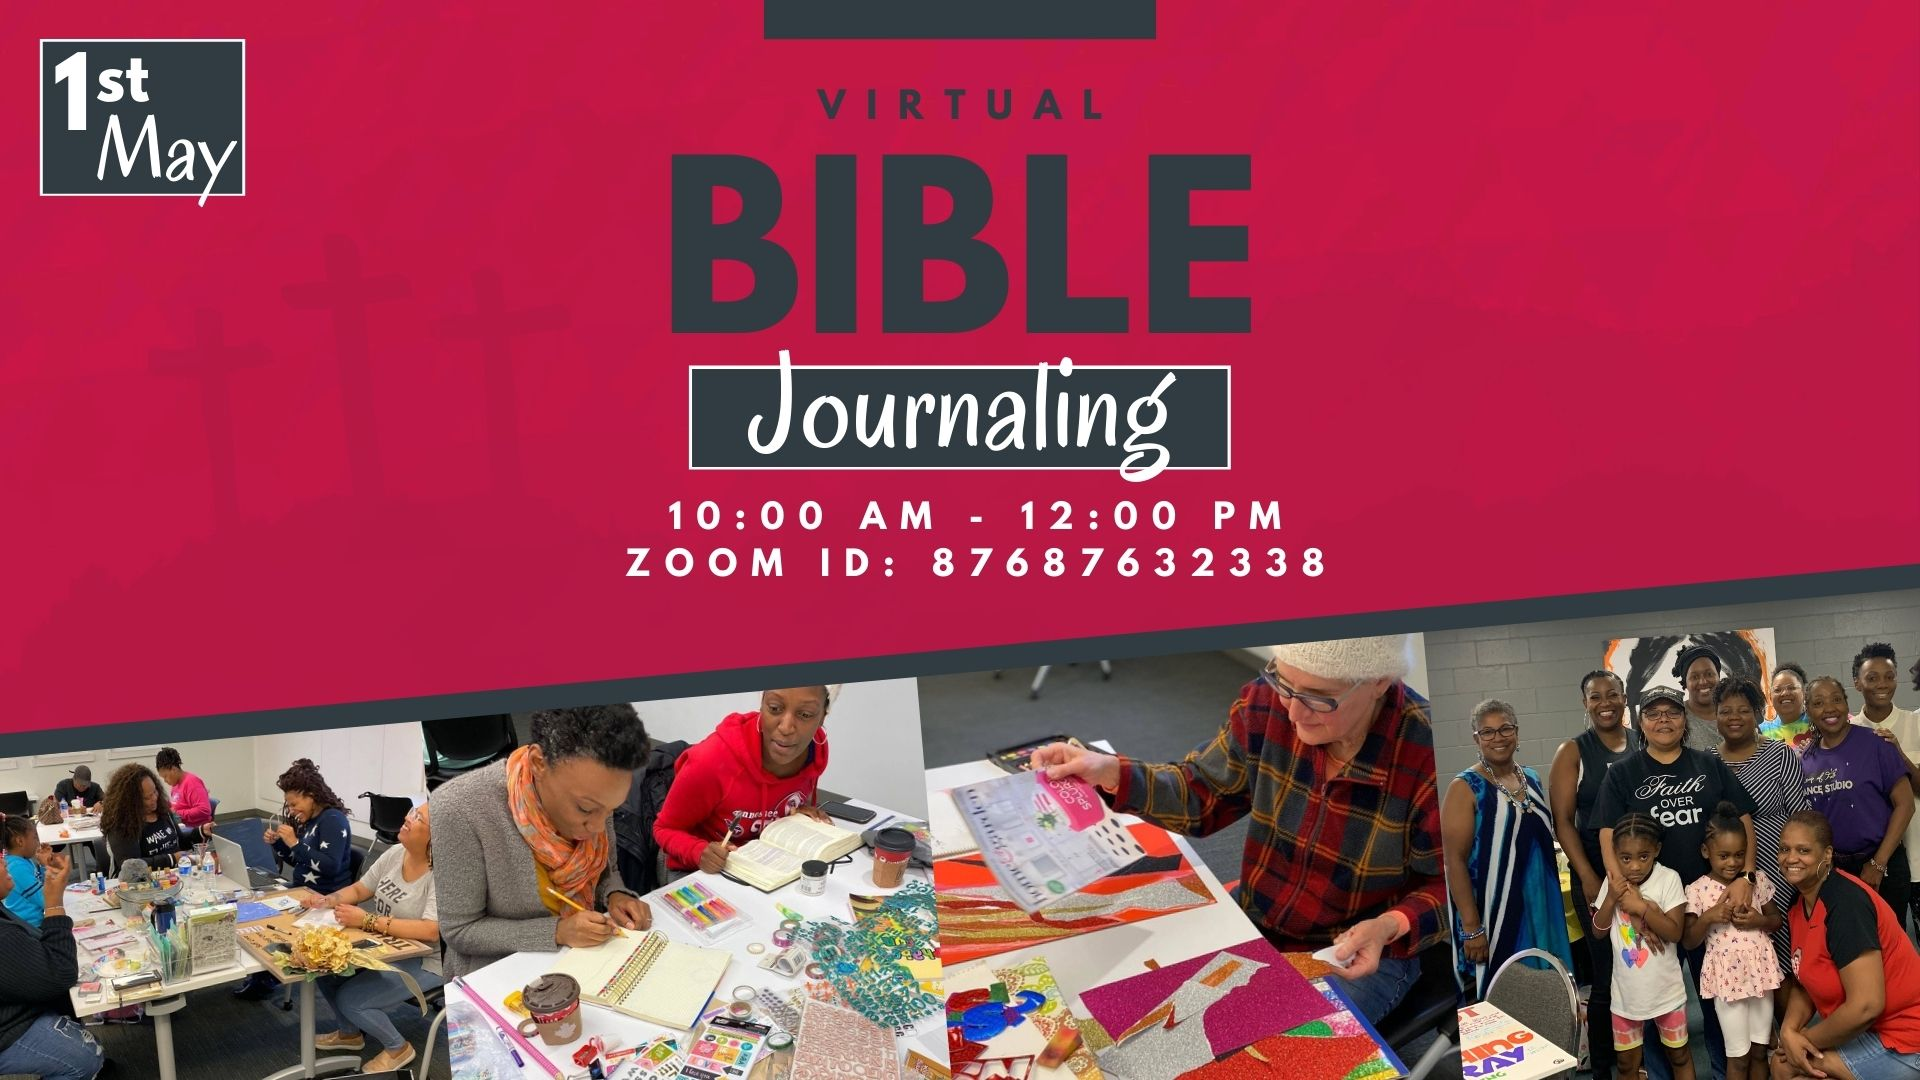 Virtual Bible Journaling